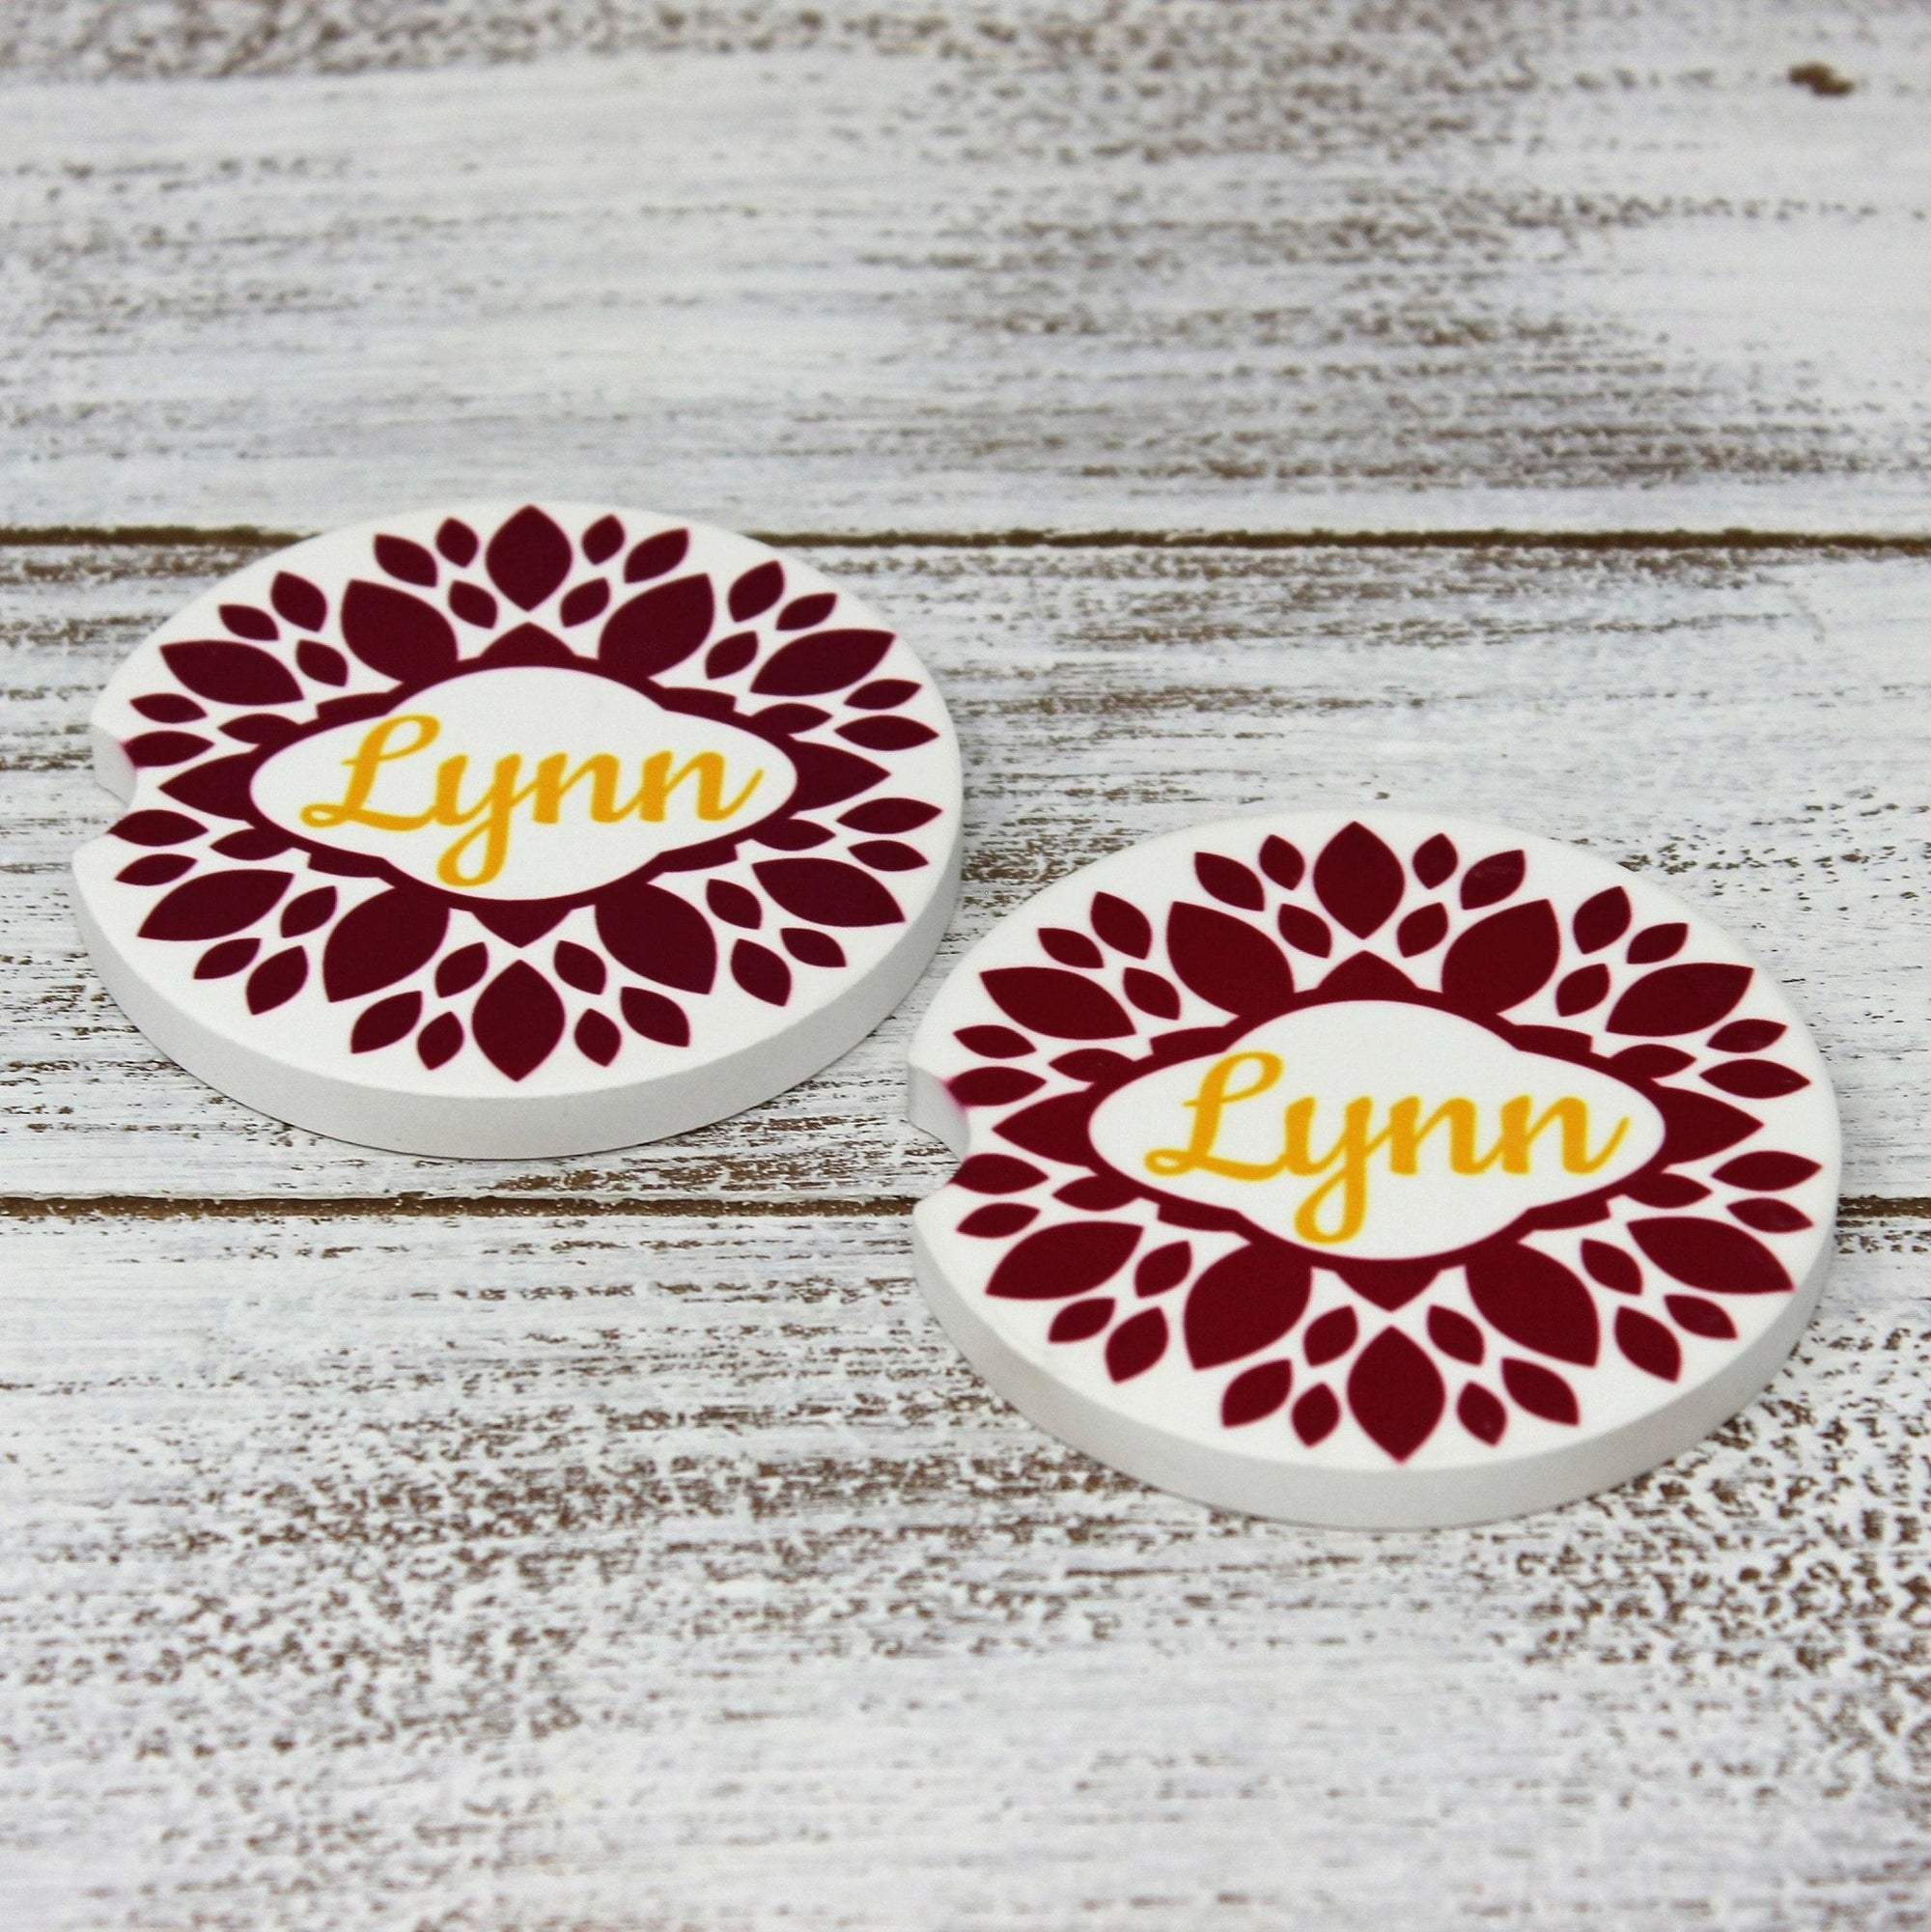 Car Accessories | Personalized Car Coasters | Custom Car Accessories | Zinnia | Set of 2 | This and That Solutions | Personalized Gifts | Custom Home Décor